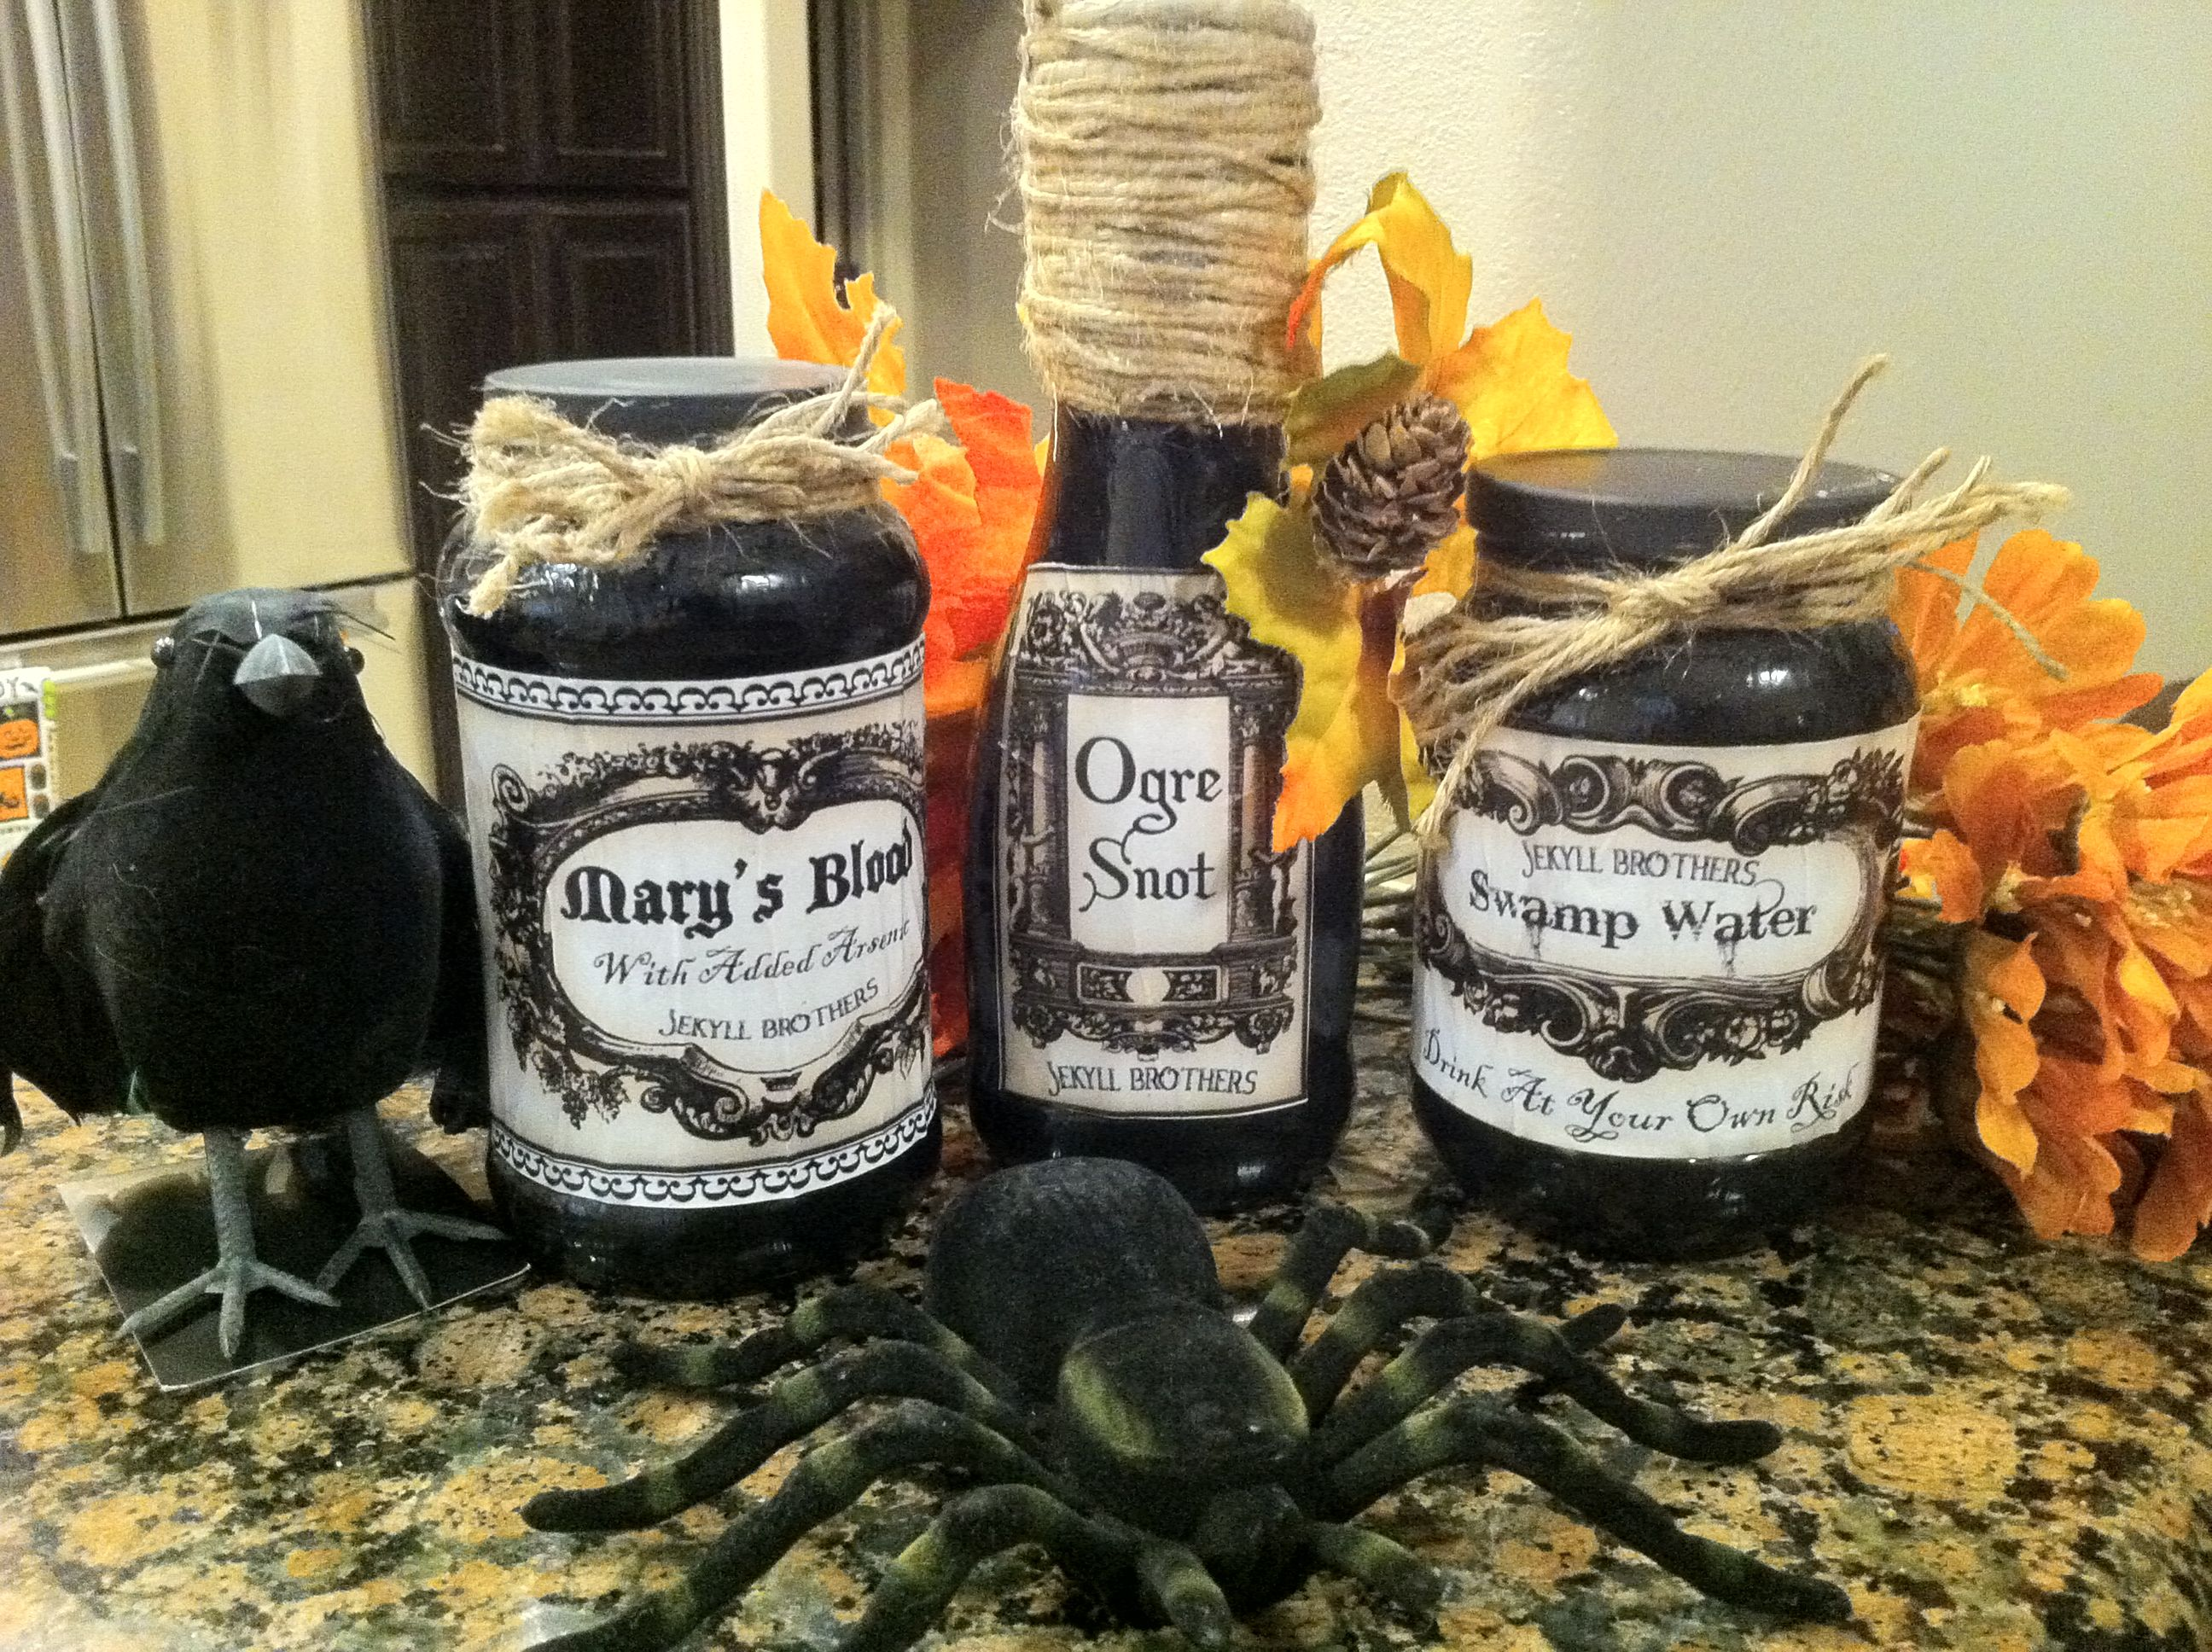 Check out my Halloween Potion Jars I made using Modge Podge, decorative rope, glass spaghetti sauce jars and some labels I printed off the Internet. Just paint the jars solid black! They look Spooktacular in my kitchen!!